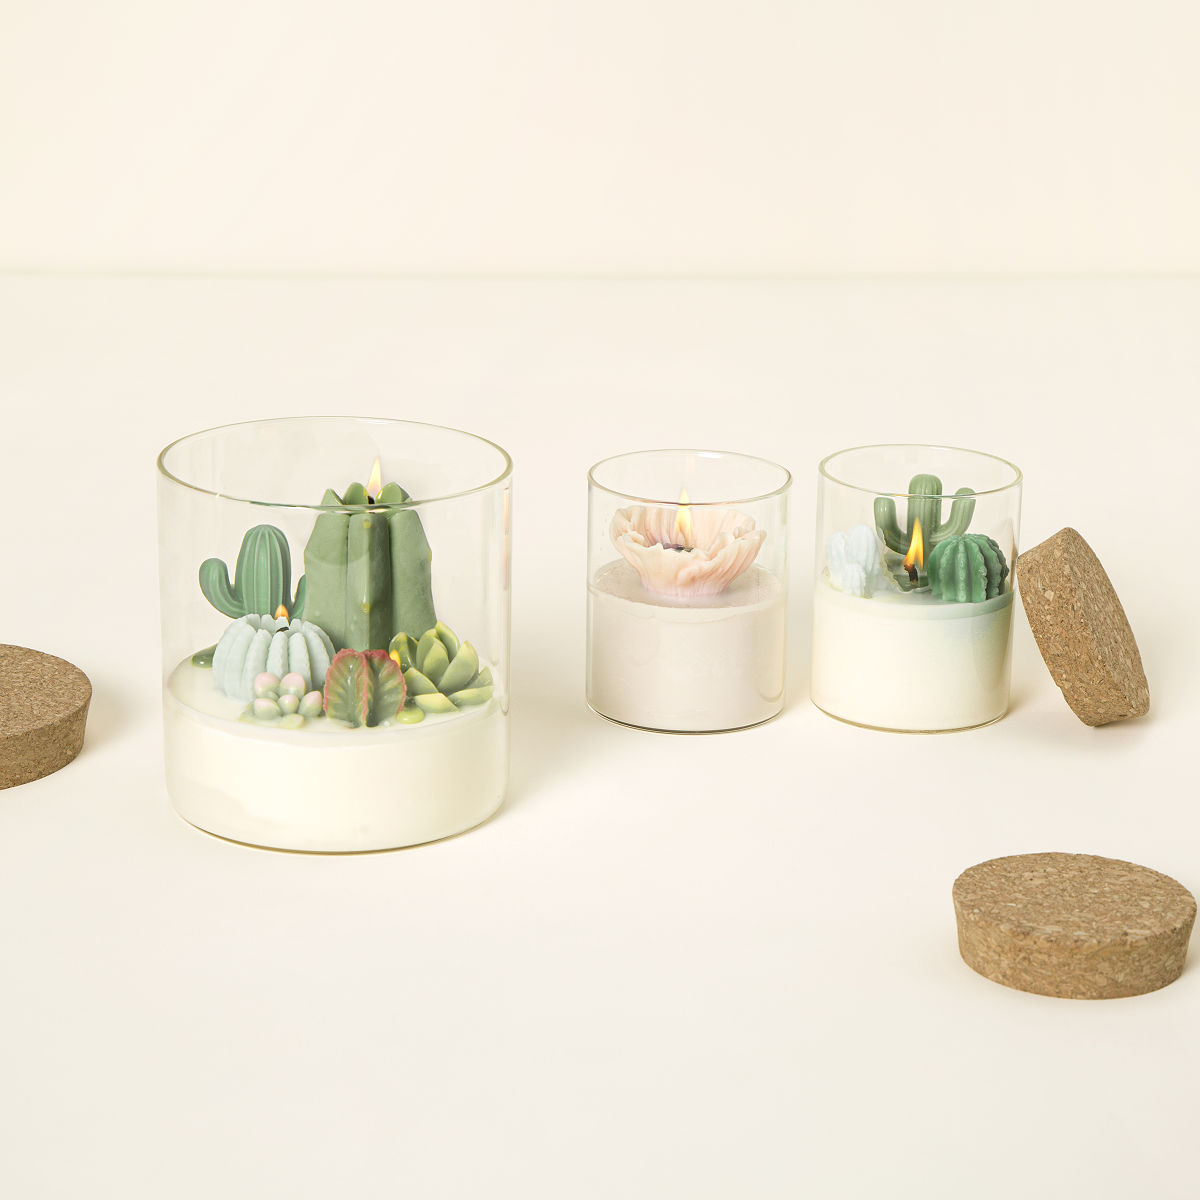 Cactus Candles, Flower Candles